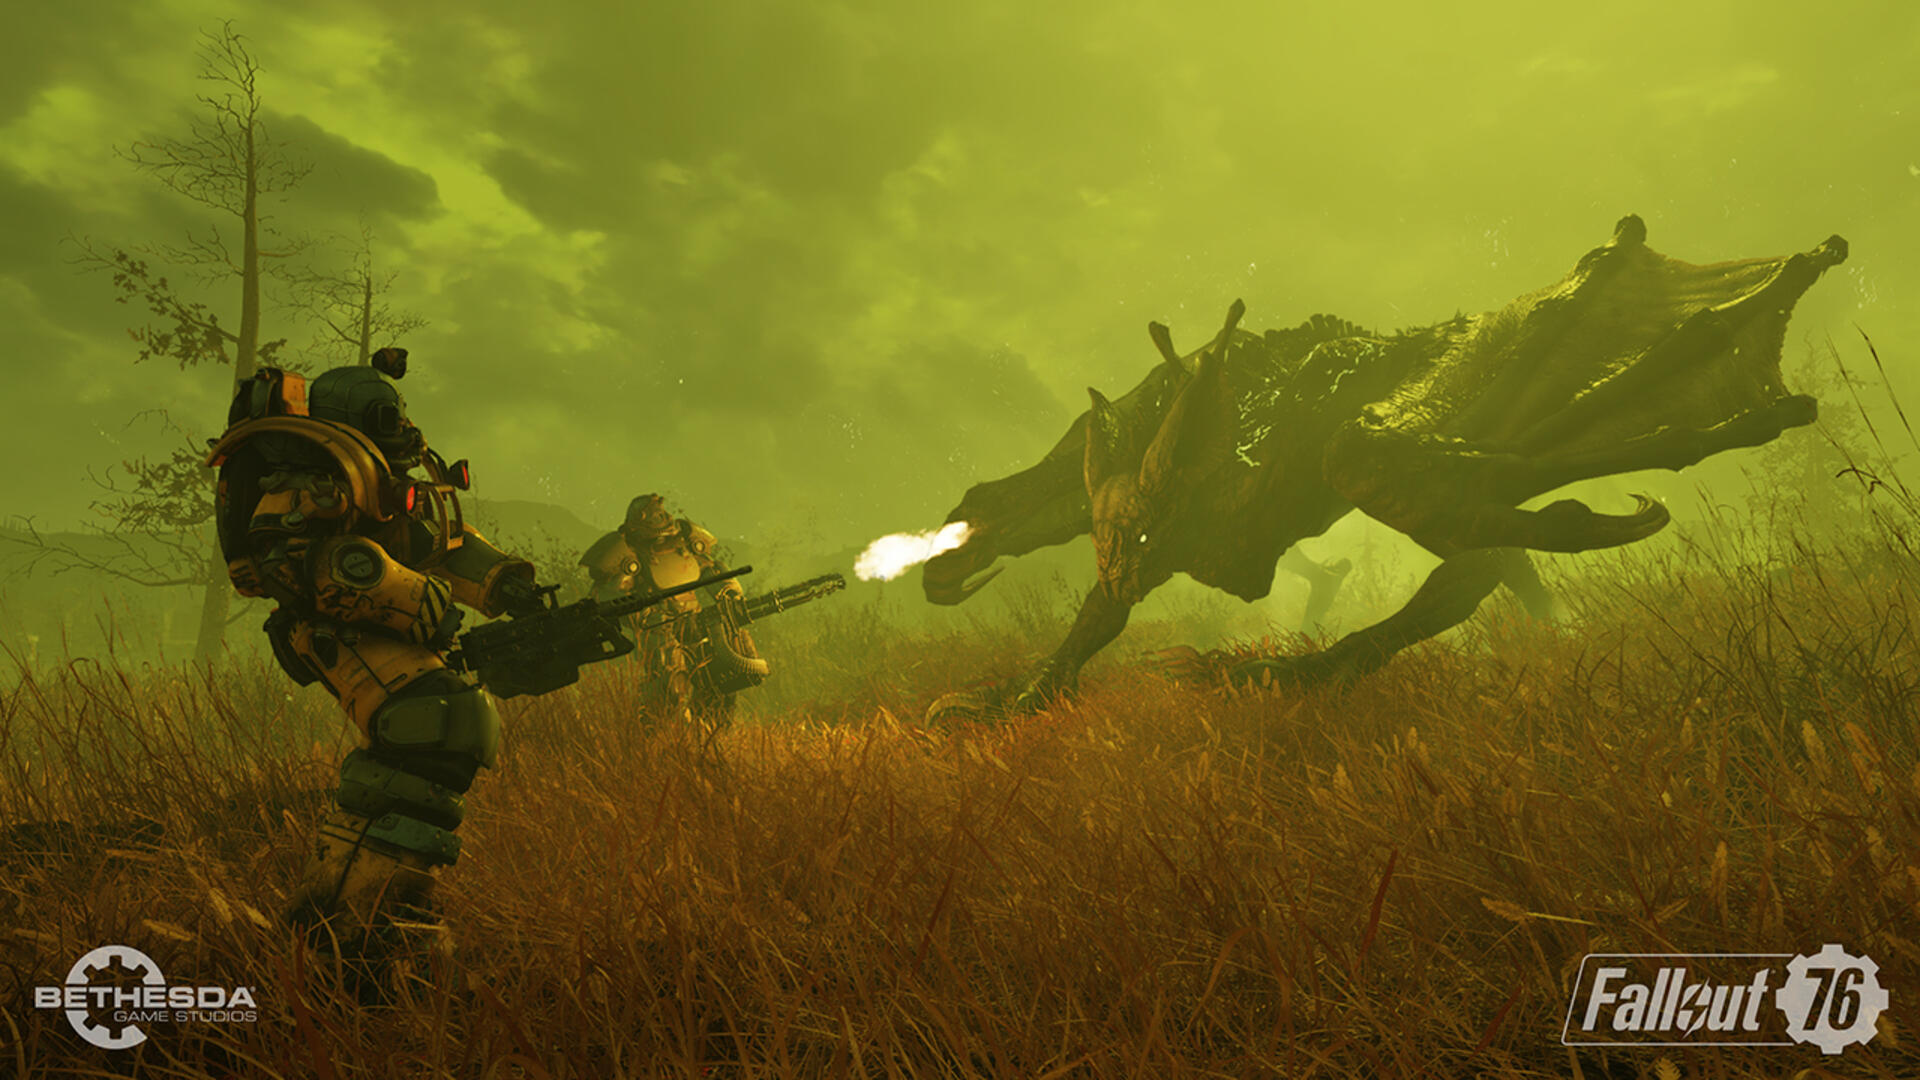 Fallout 76 Teases New PvP Mode for 2019